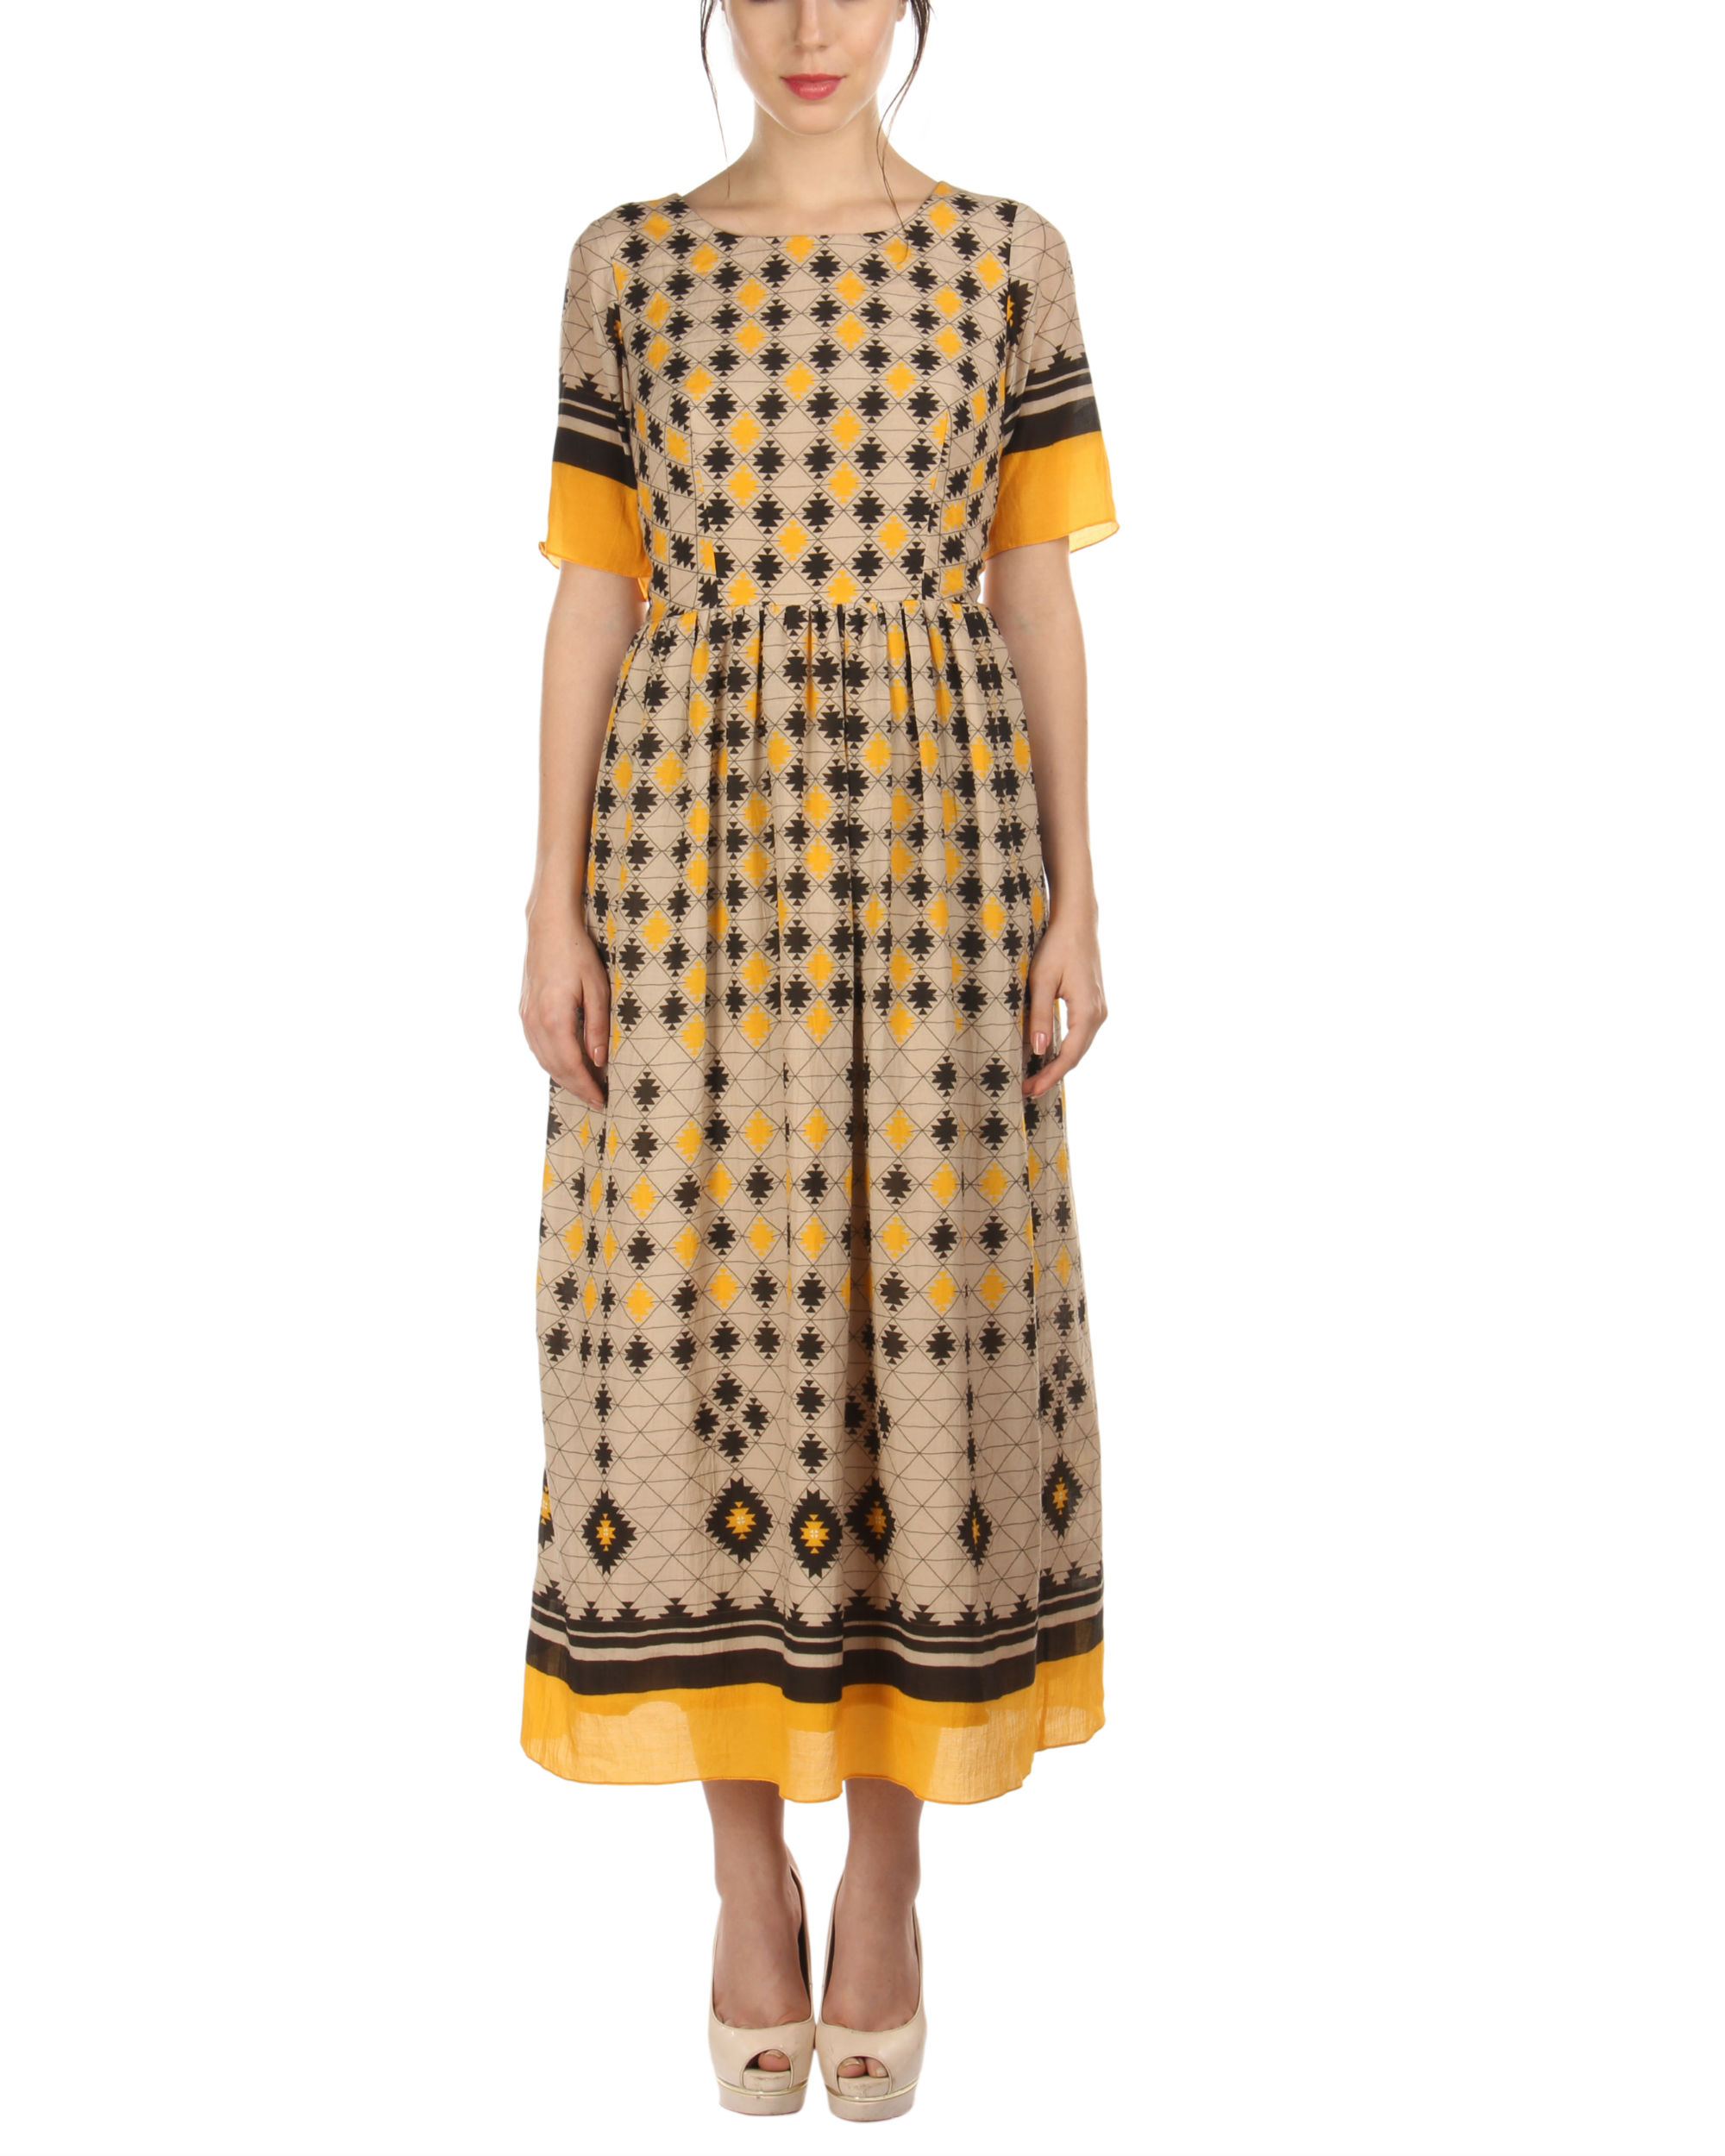 Yellow ankle length dress